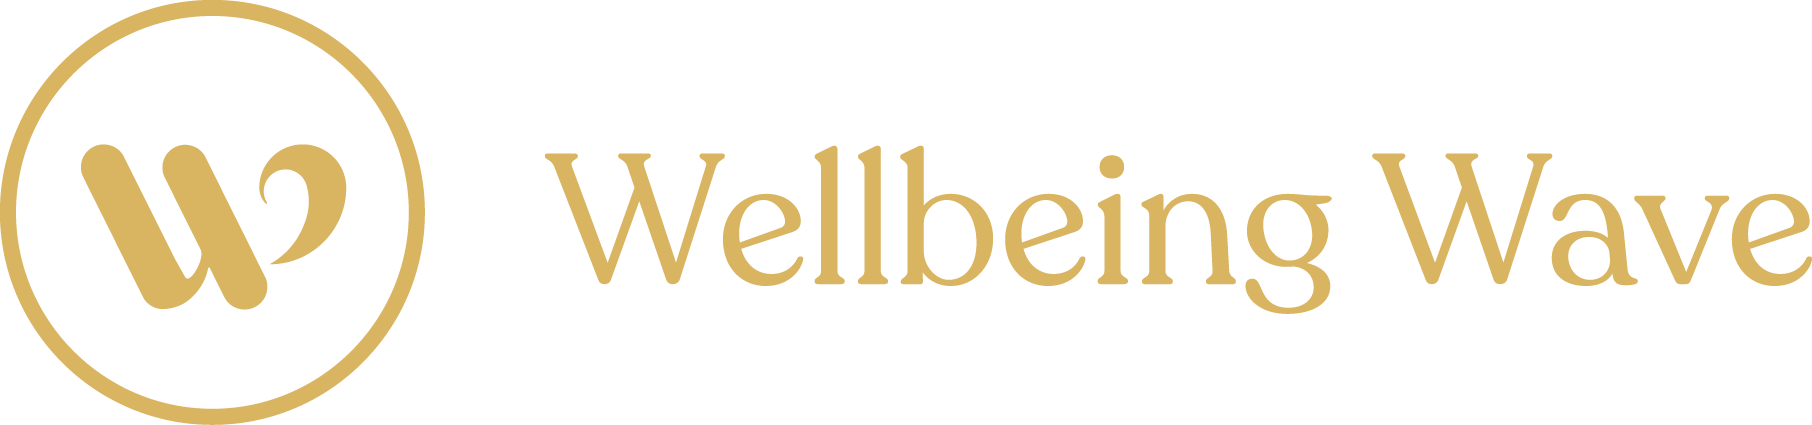 Wellbeing wave footer logo